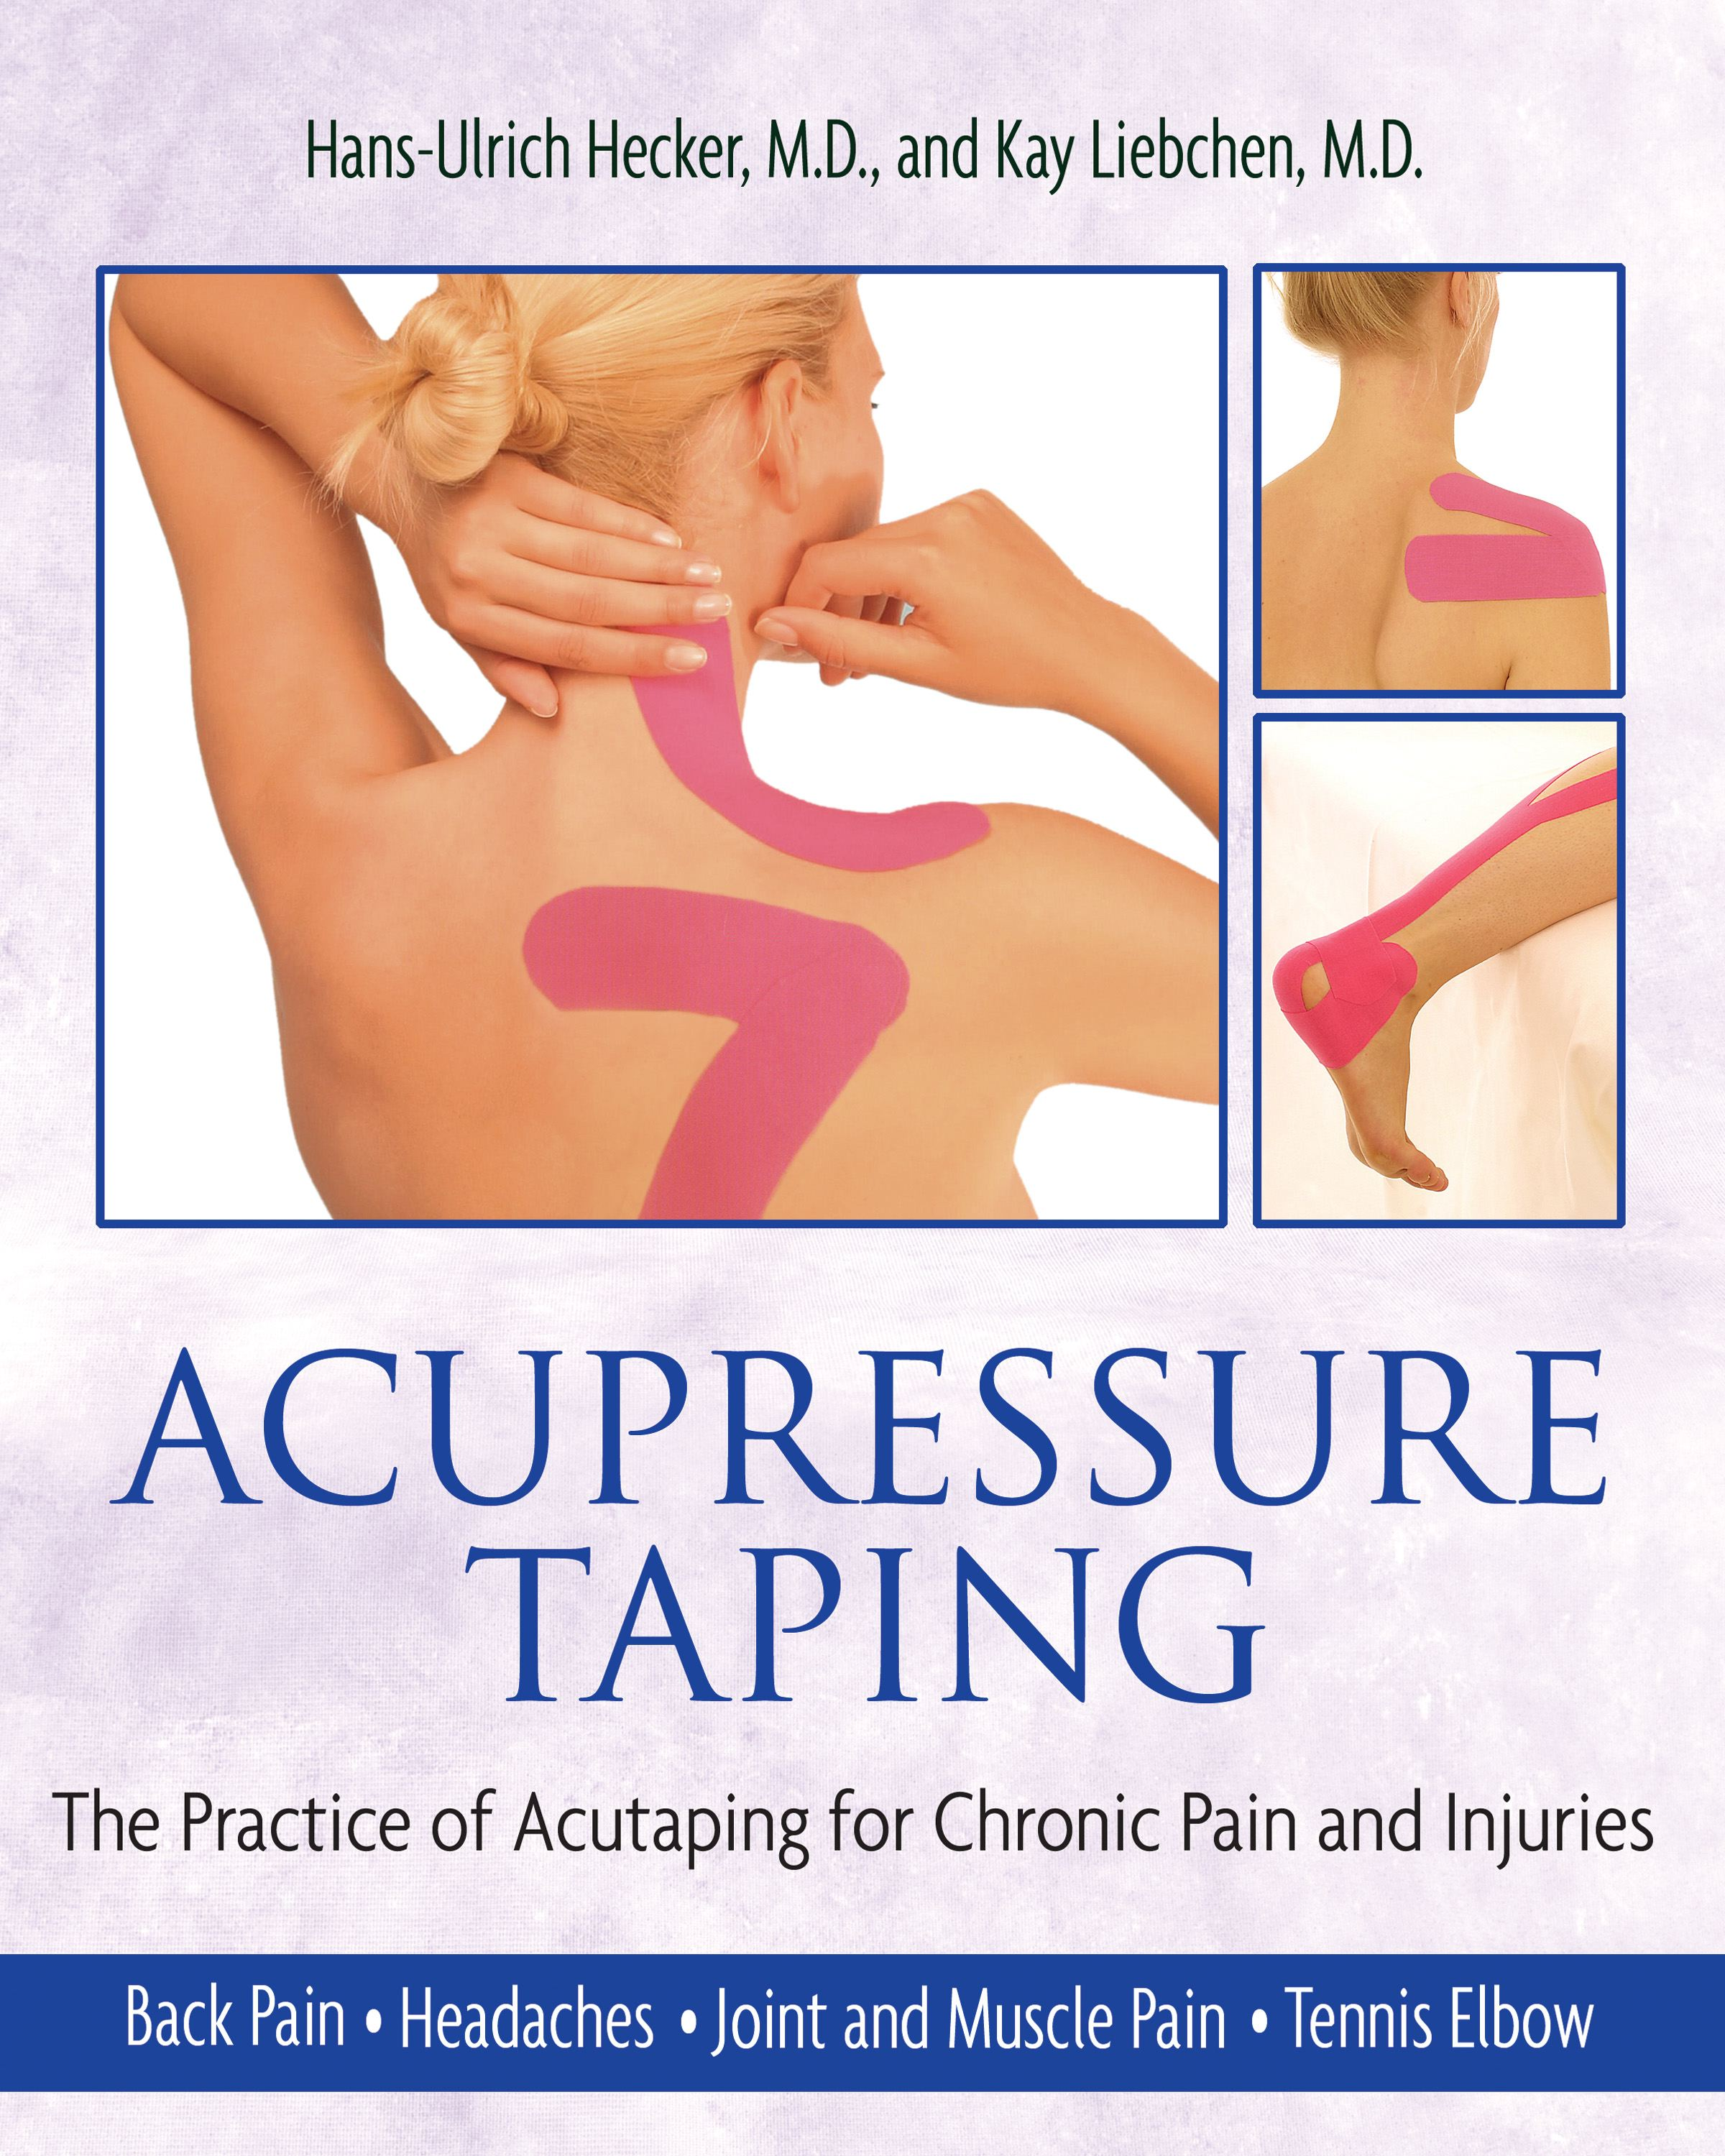 Acupressure taping 9781594771484 hr